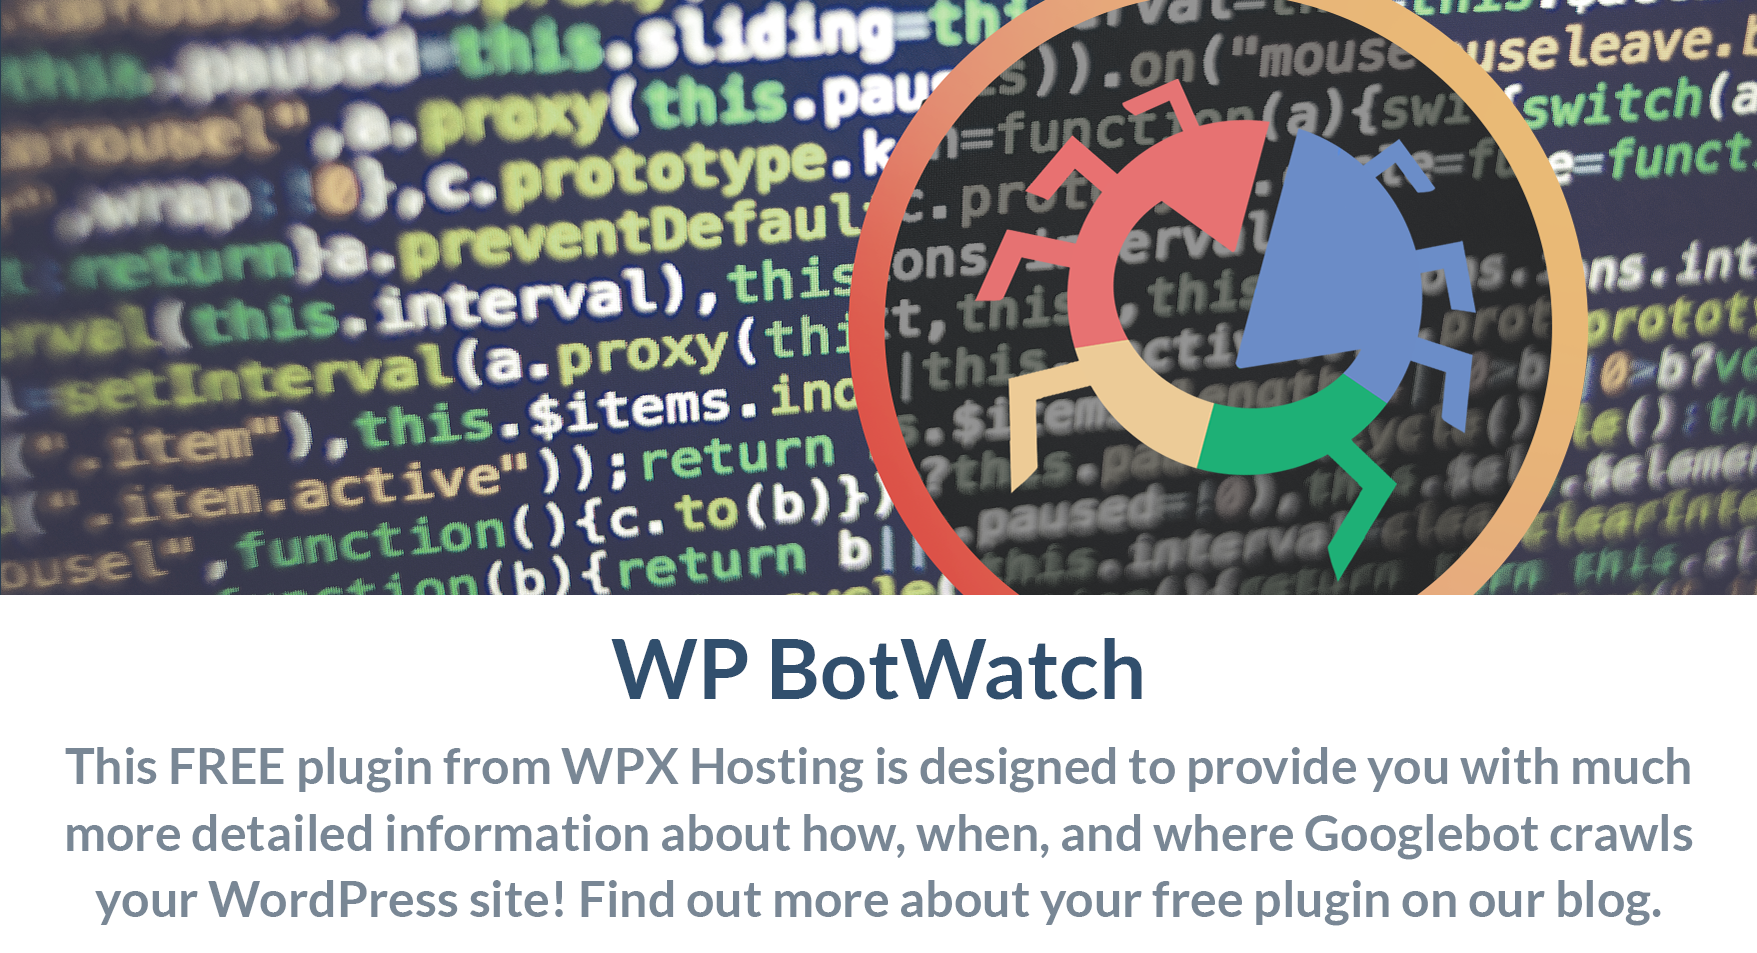 WP BotWatch